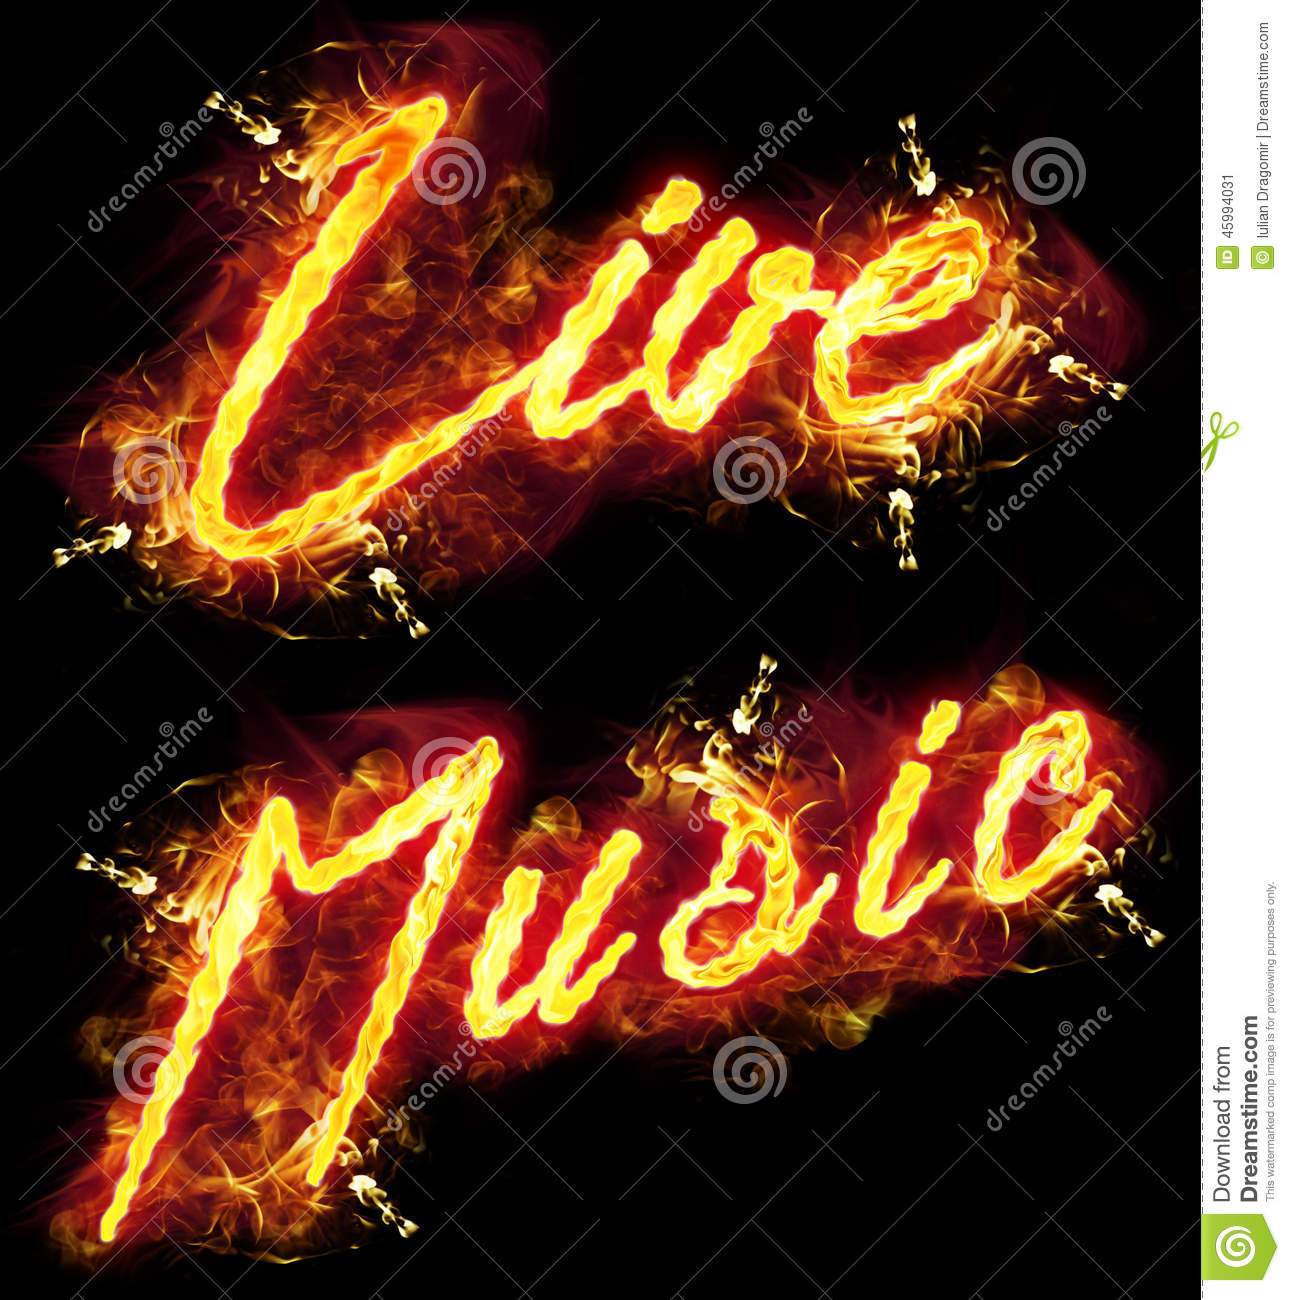 Fire Text Live Music Stock Illustration - Image: 45994031